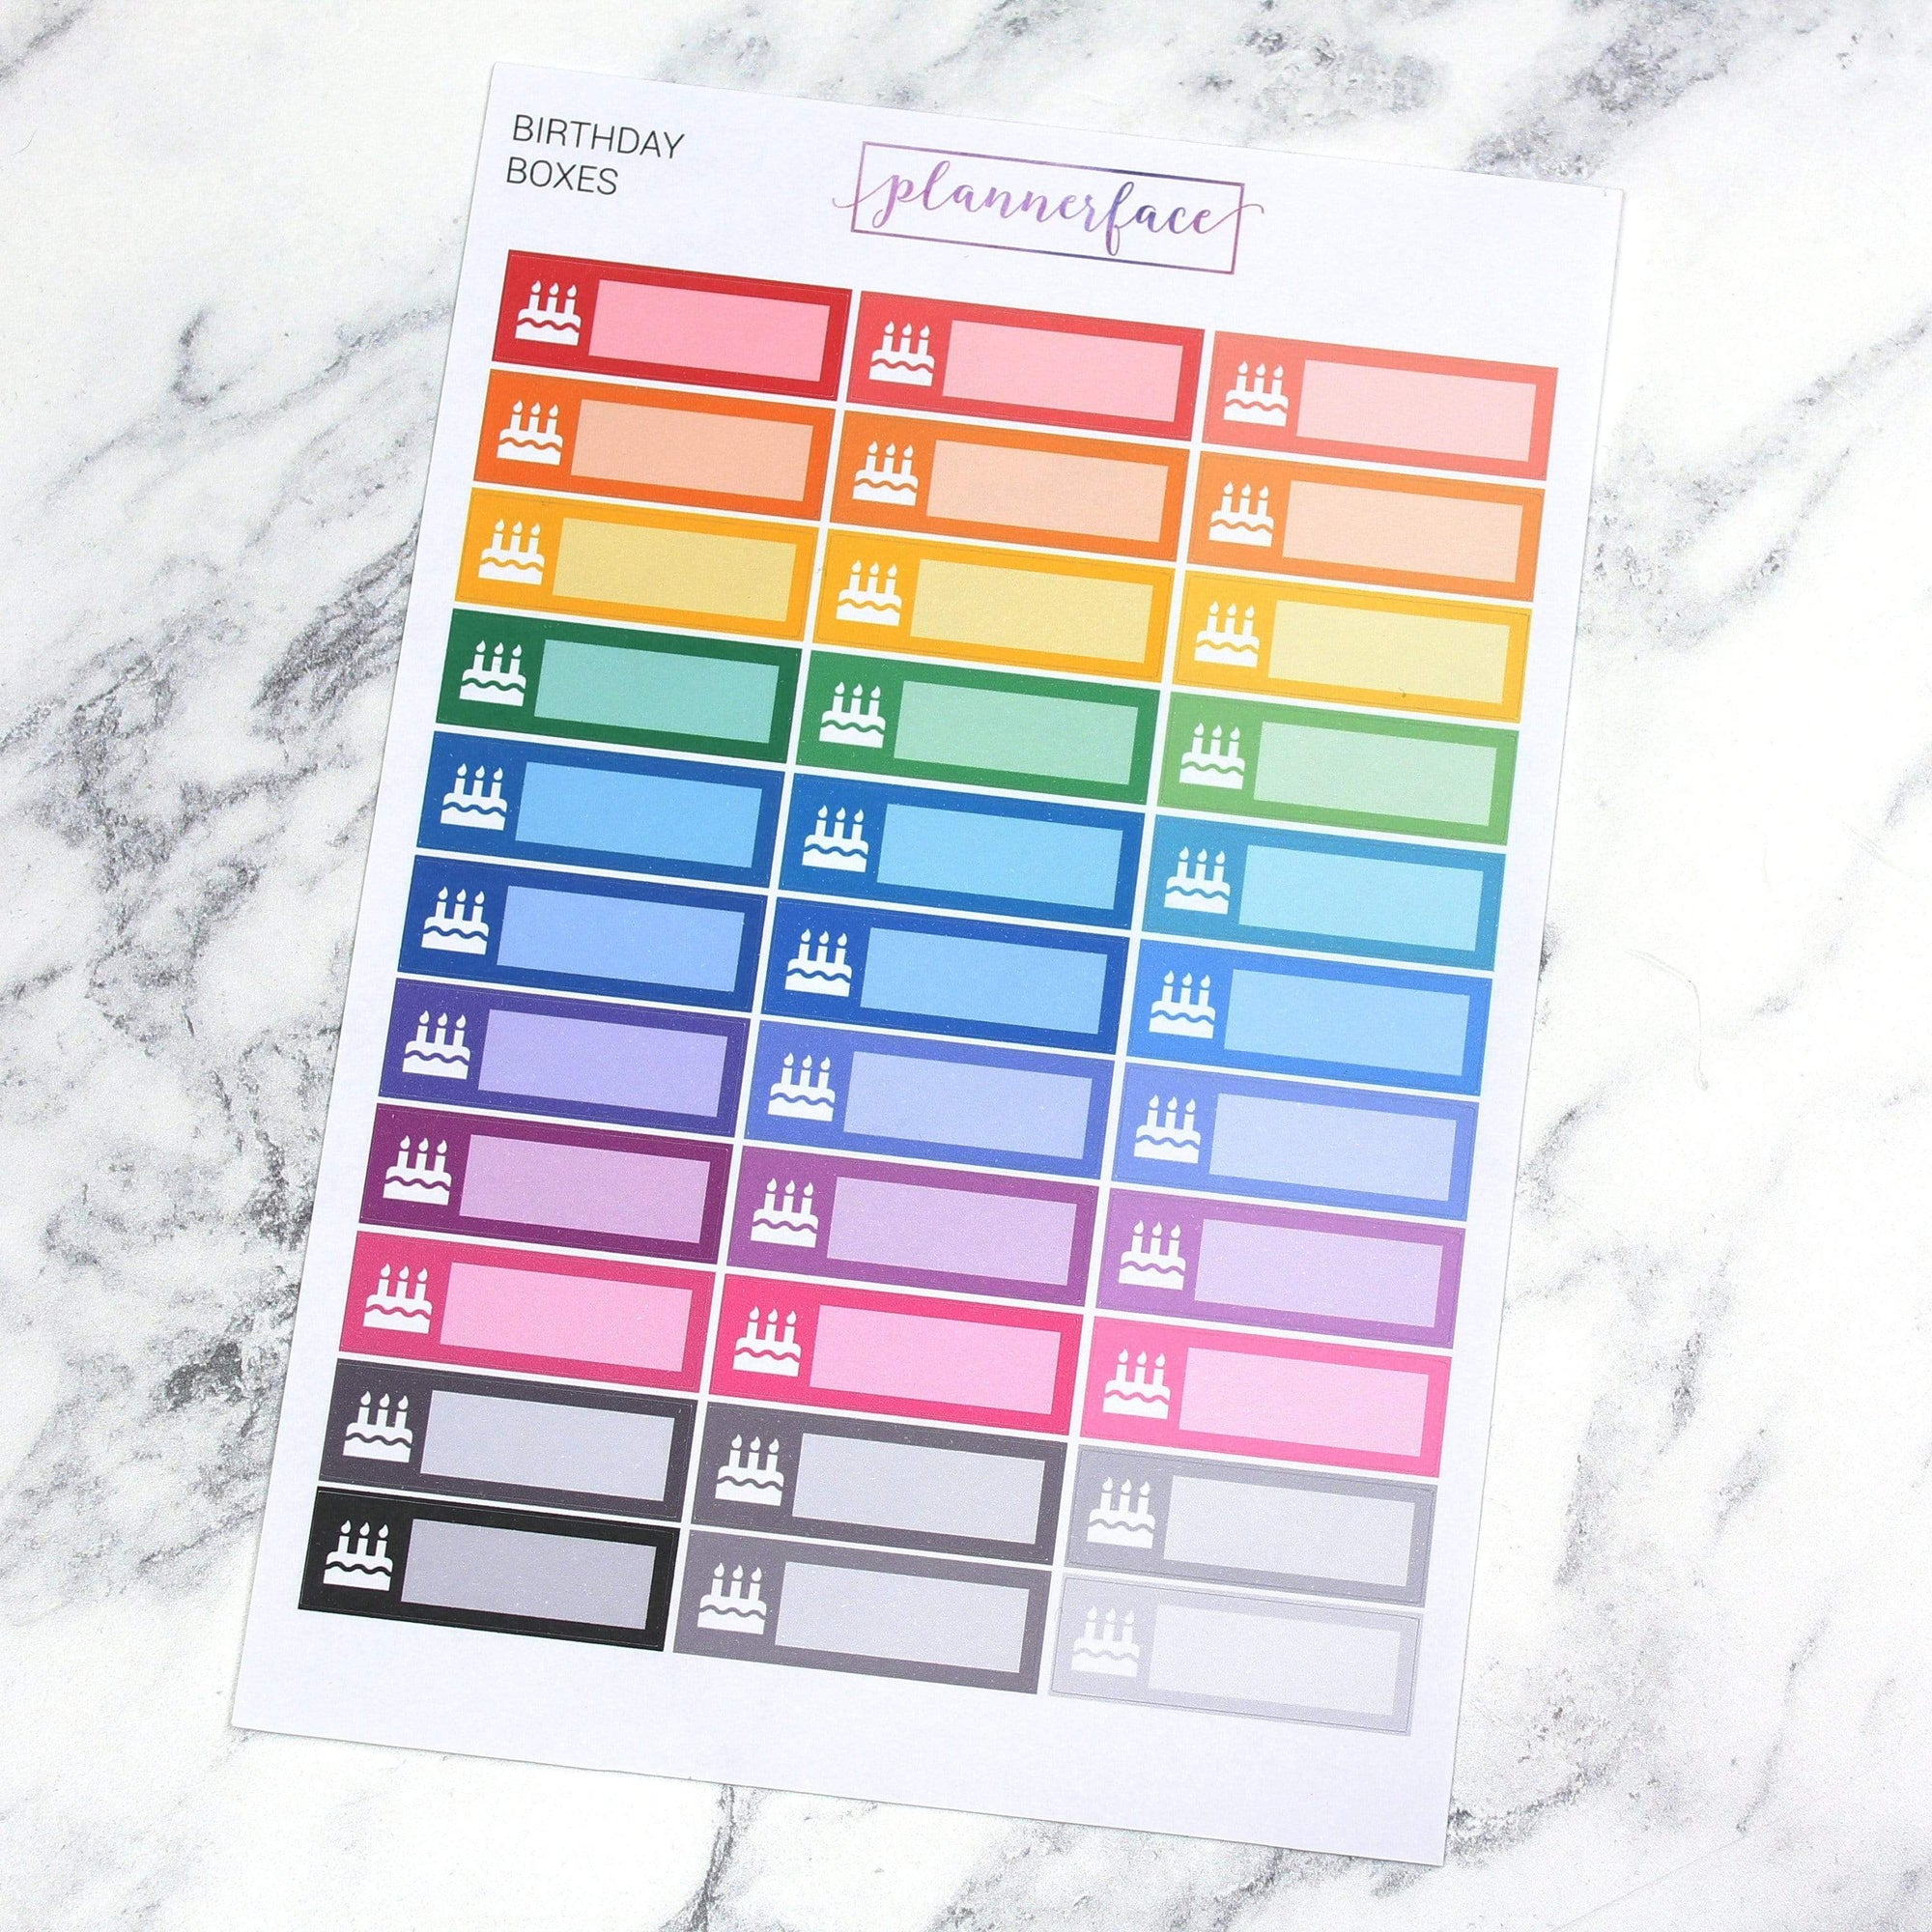 Plannerface Birthday Quarter Boxes | Multicolour Planner Stickers